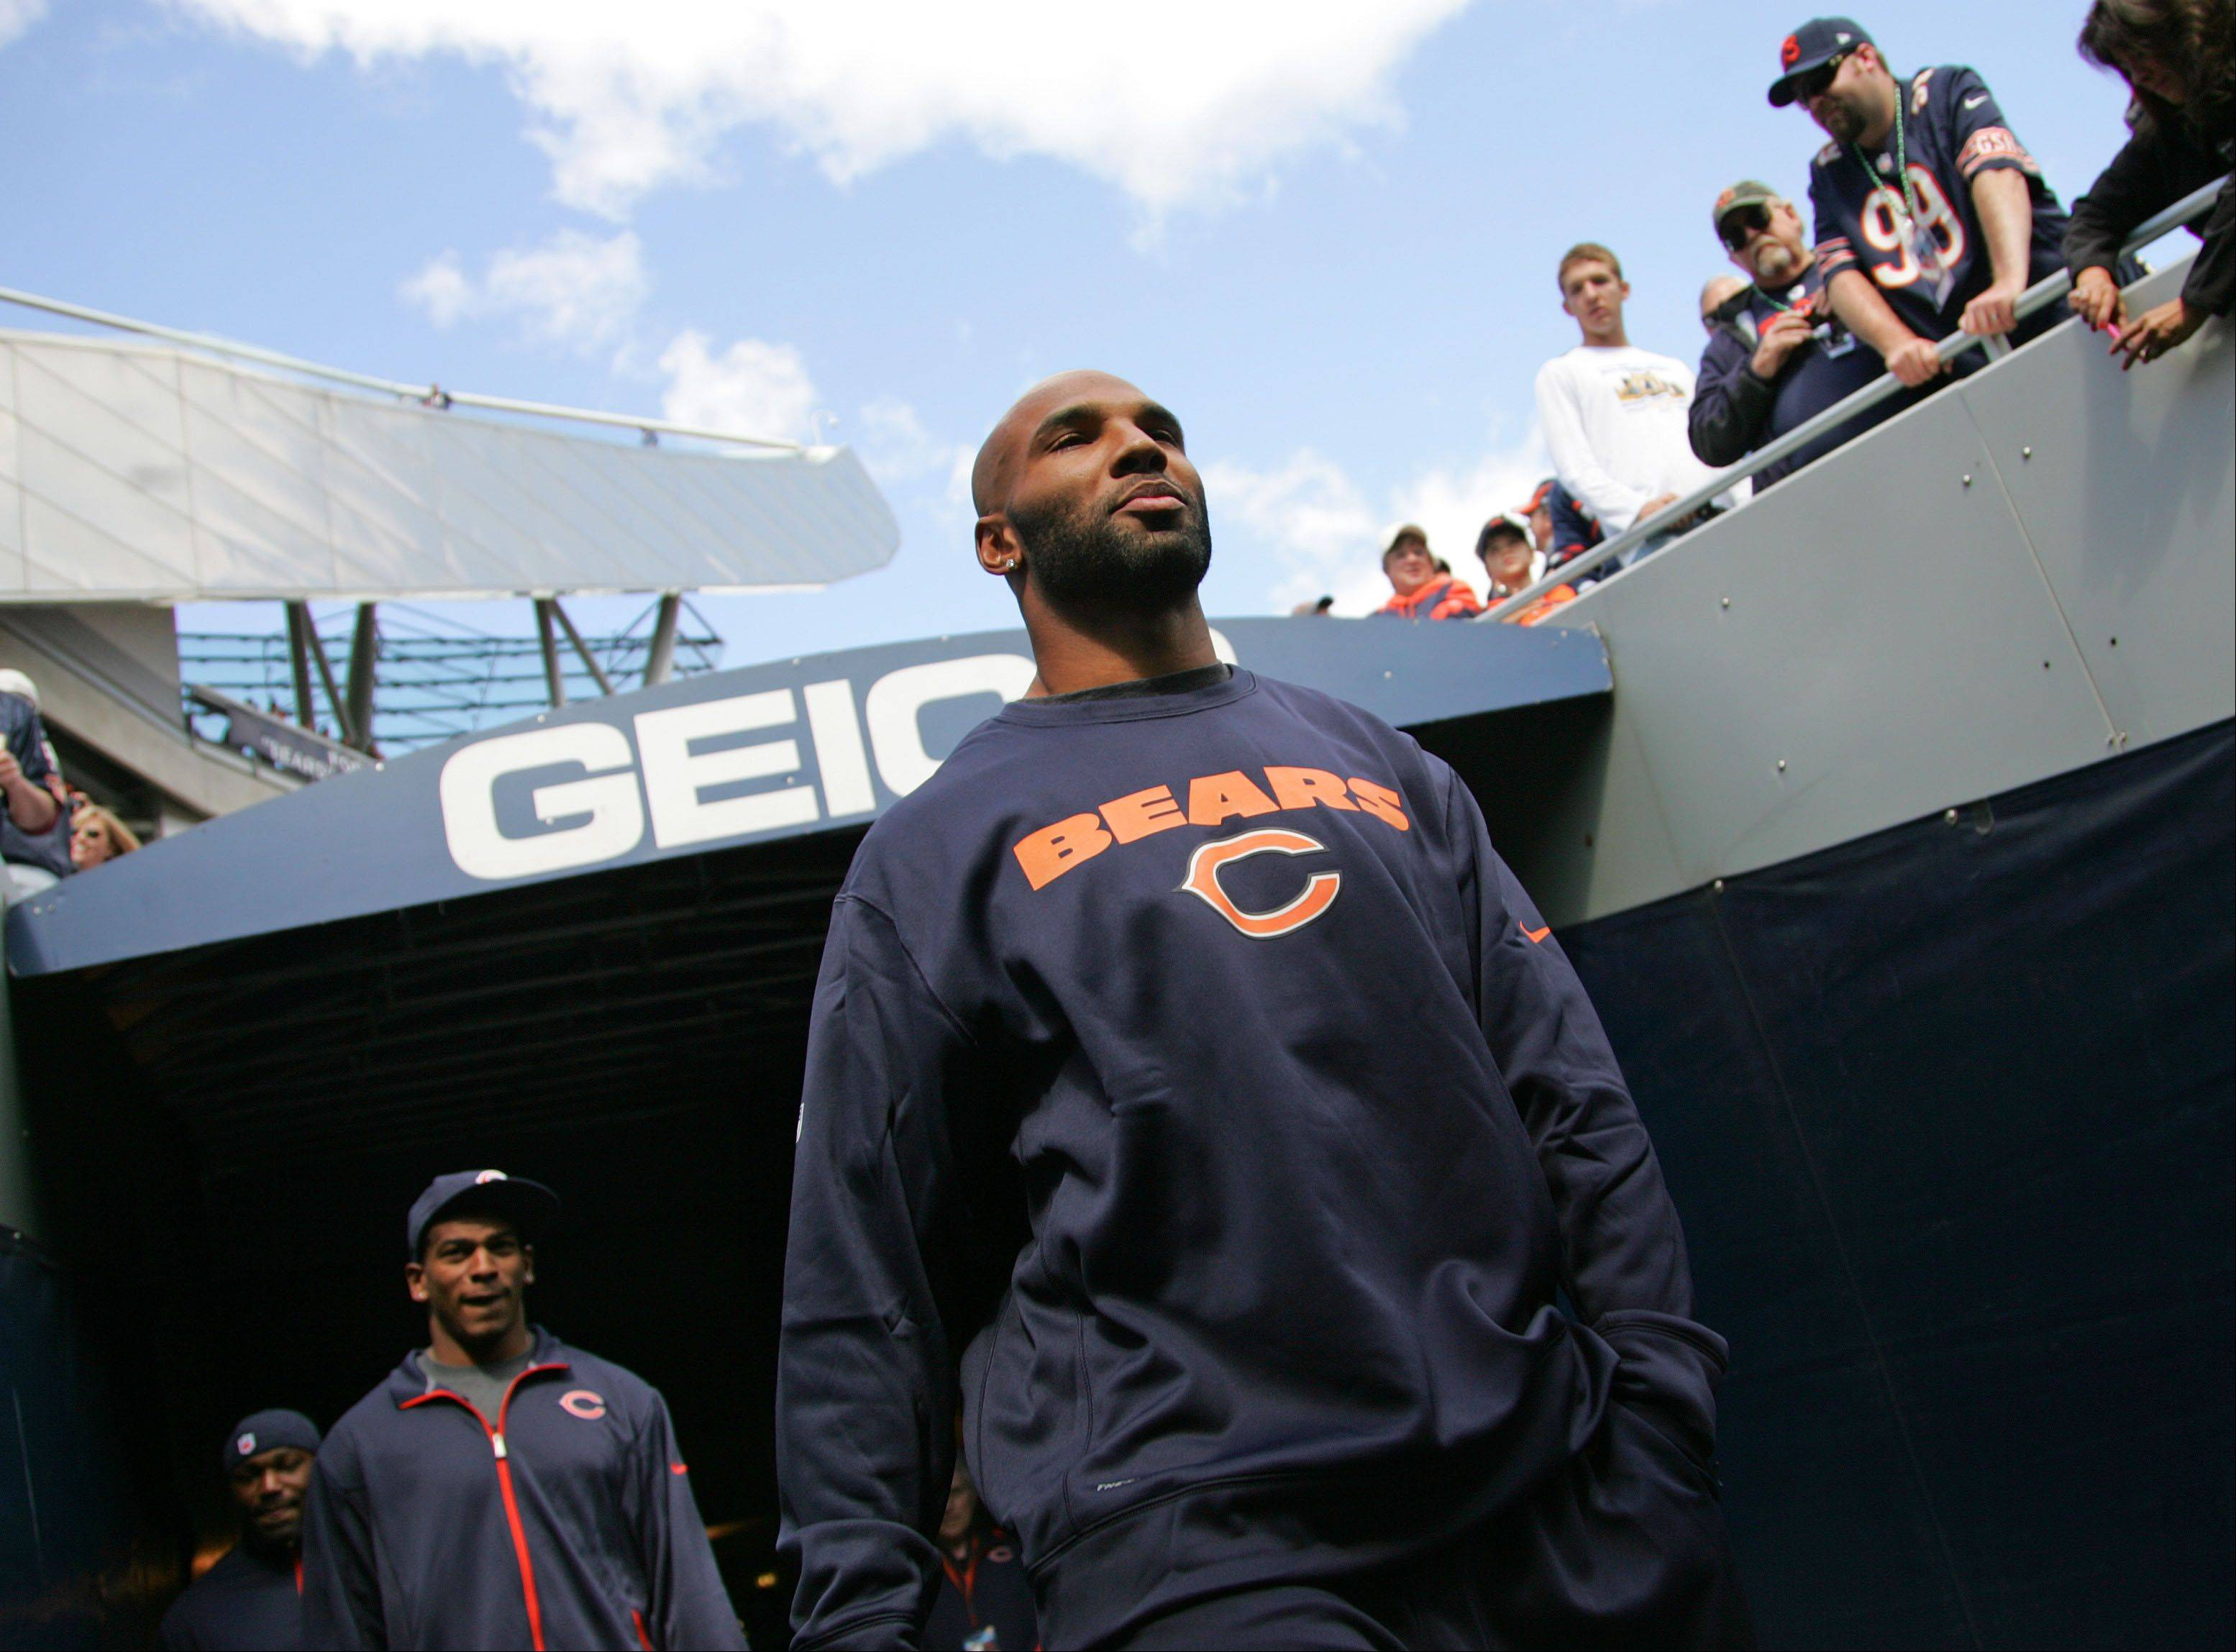 Chicago Bears running back Matt Forte comes out on the field in street clothes during the Bears game against the St. Louis Rams Sunday at Soldier Field in Chicago.